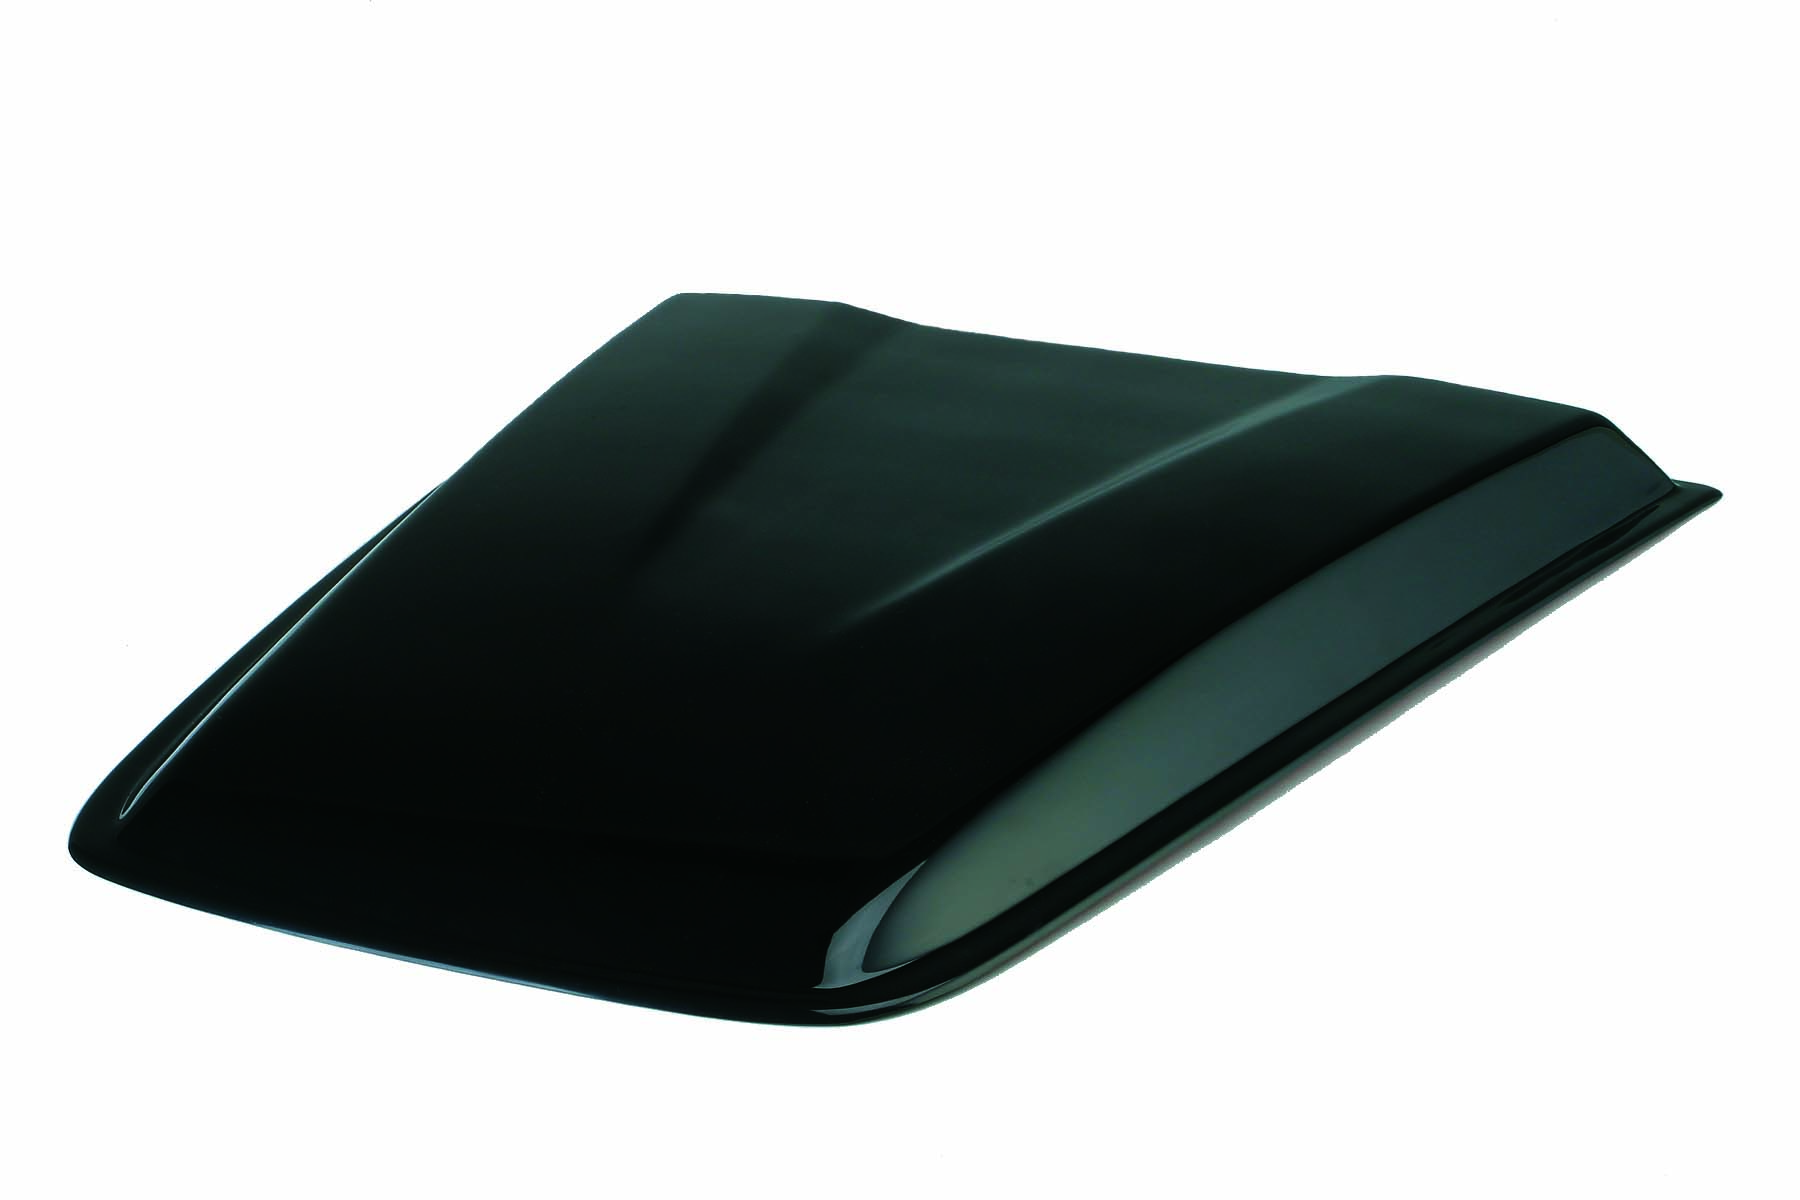 Chevrolet Silverado 1999-2010 Hd Truck Cowl Induction Hood Scoop